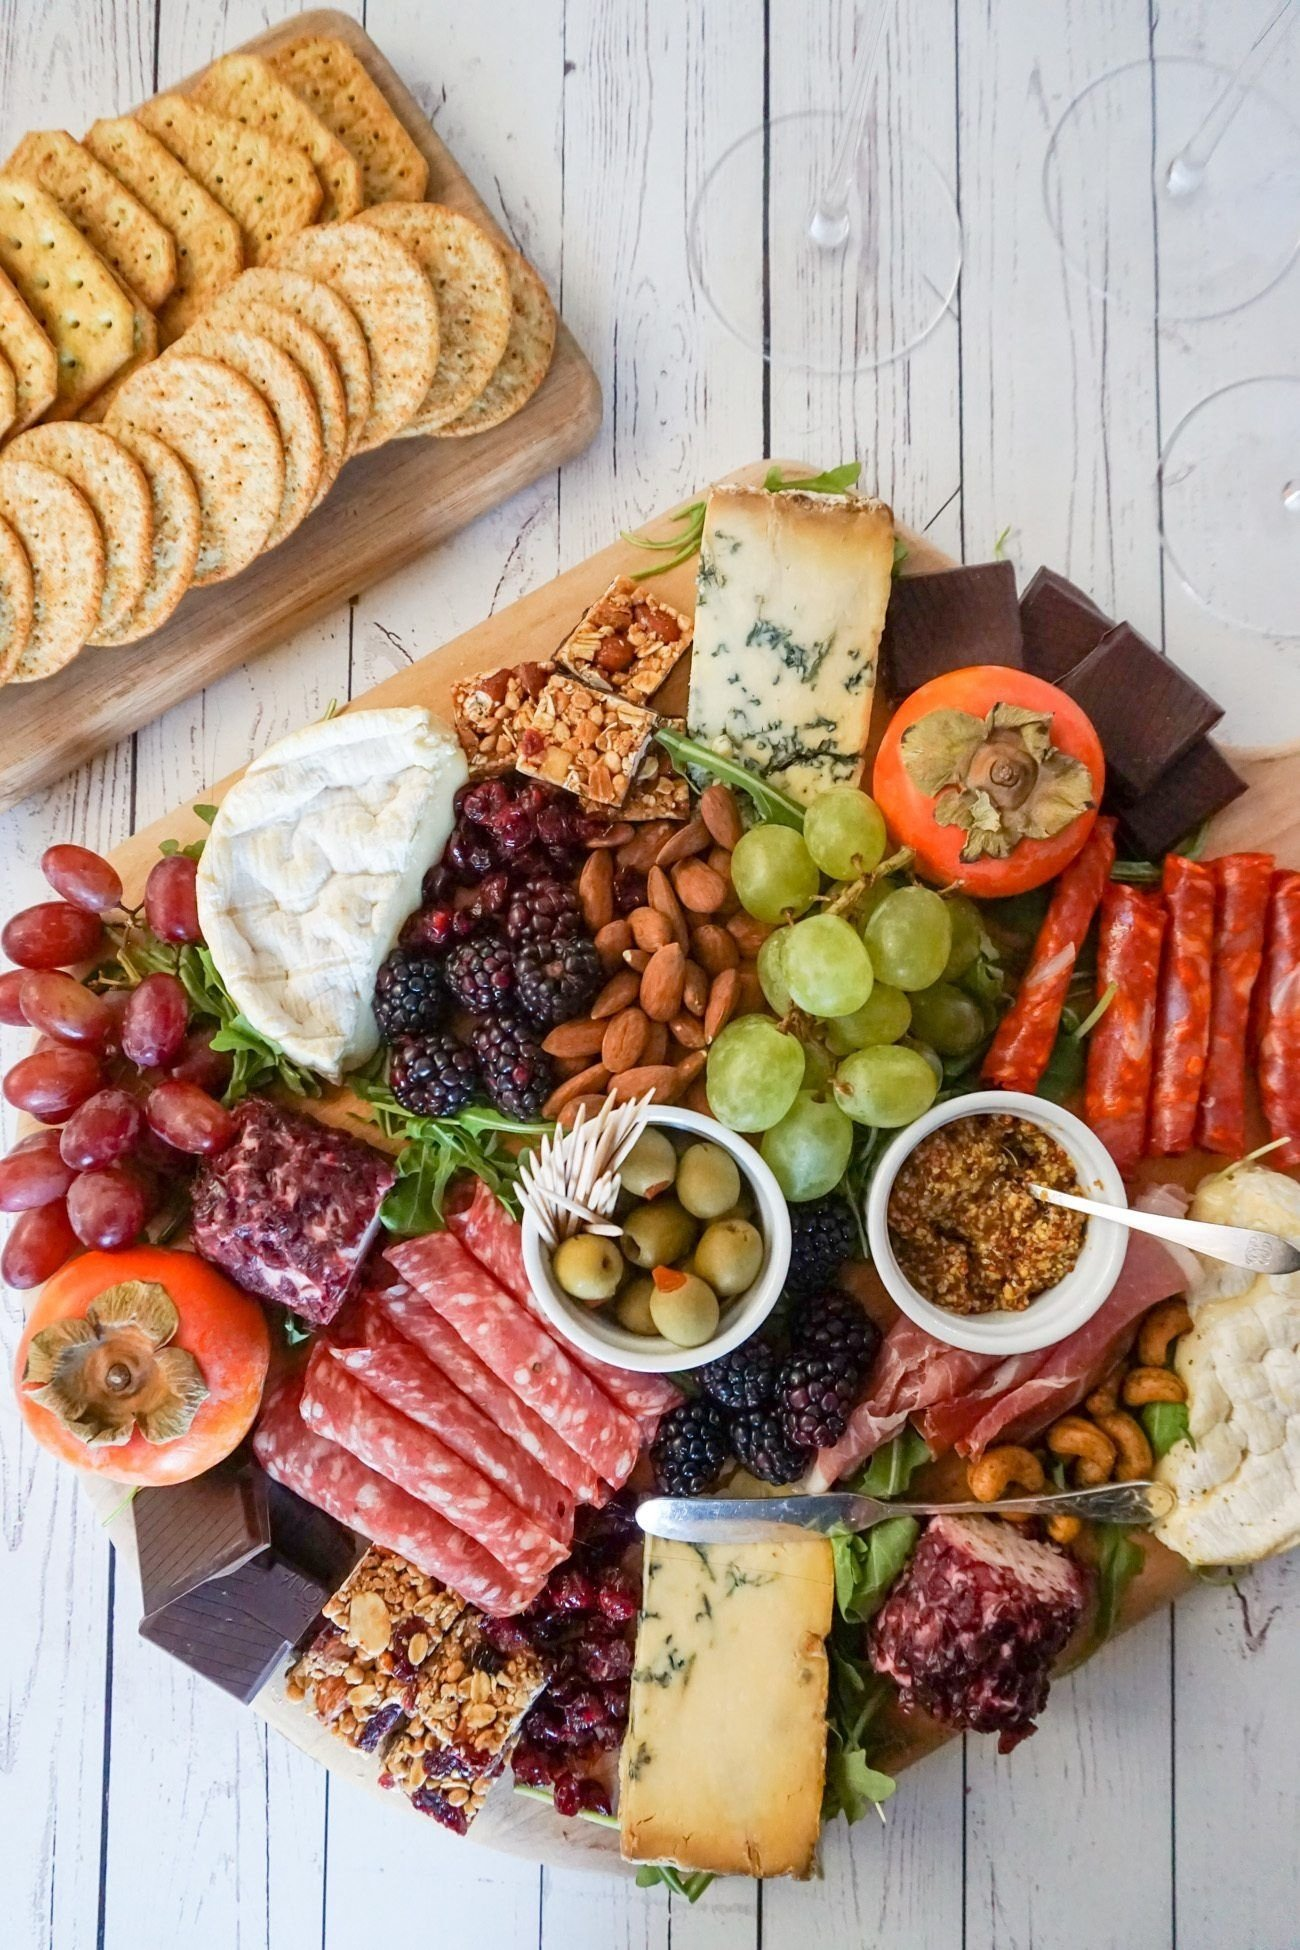 10 Unique Meat And Cheese Platter Ideas tips for making the ultimate charcuterie and cheese board 1 2021